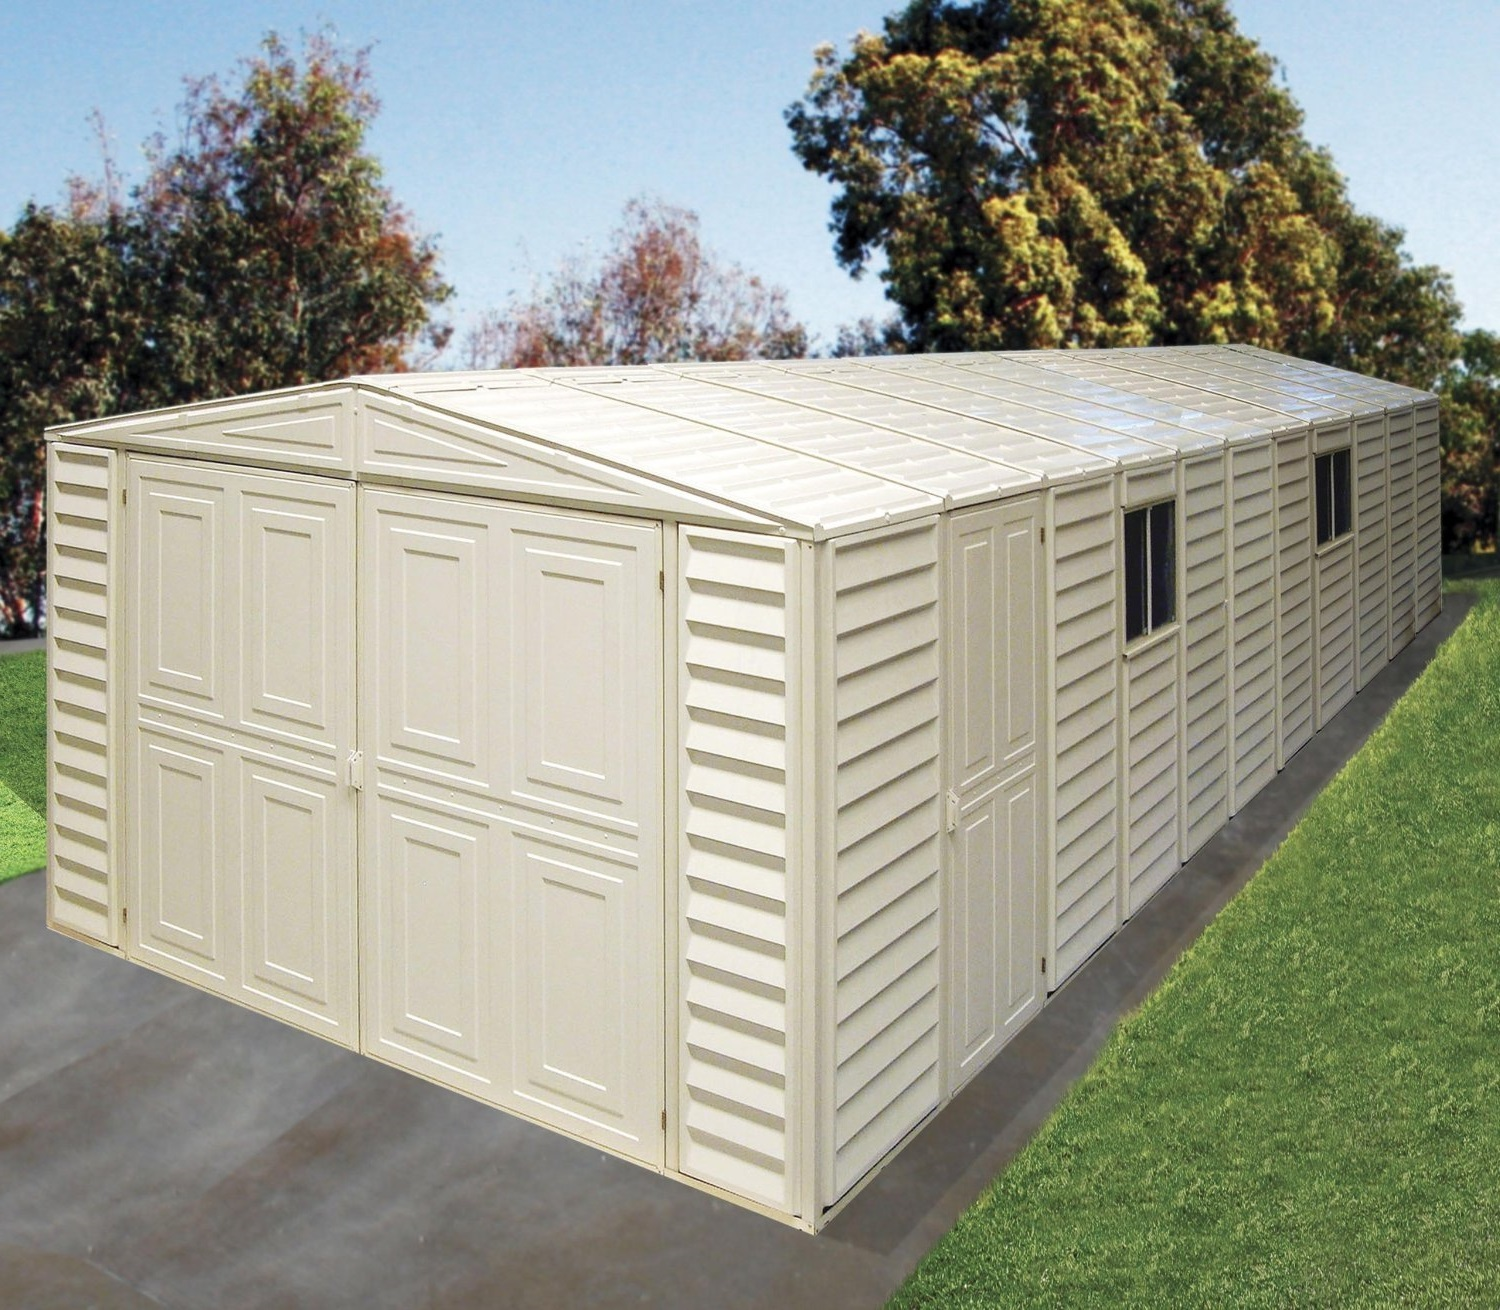 Car Garage Shed Storage Outdoor Garden Backyard Yard